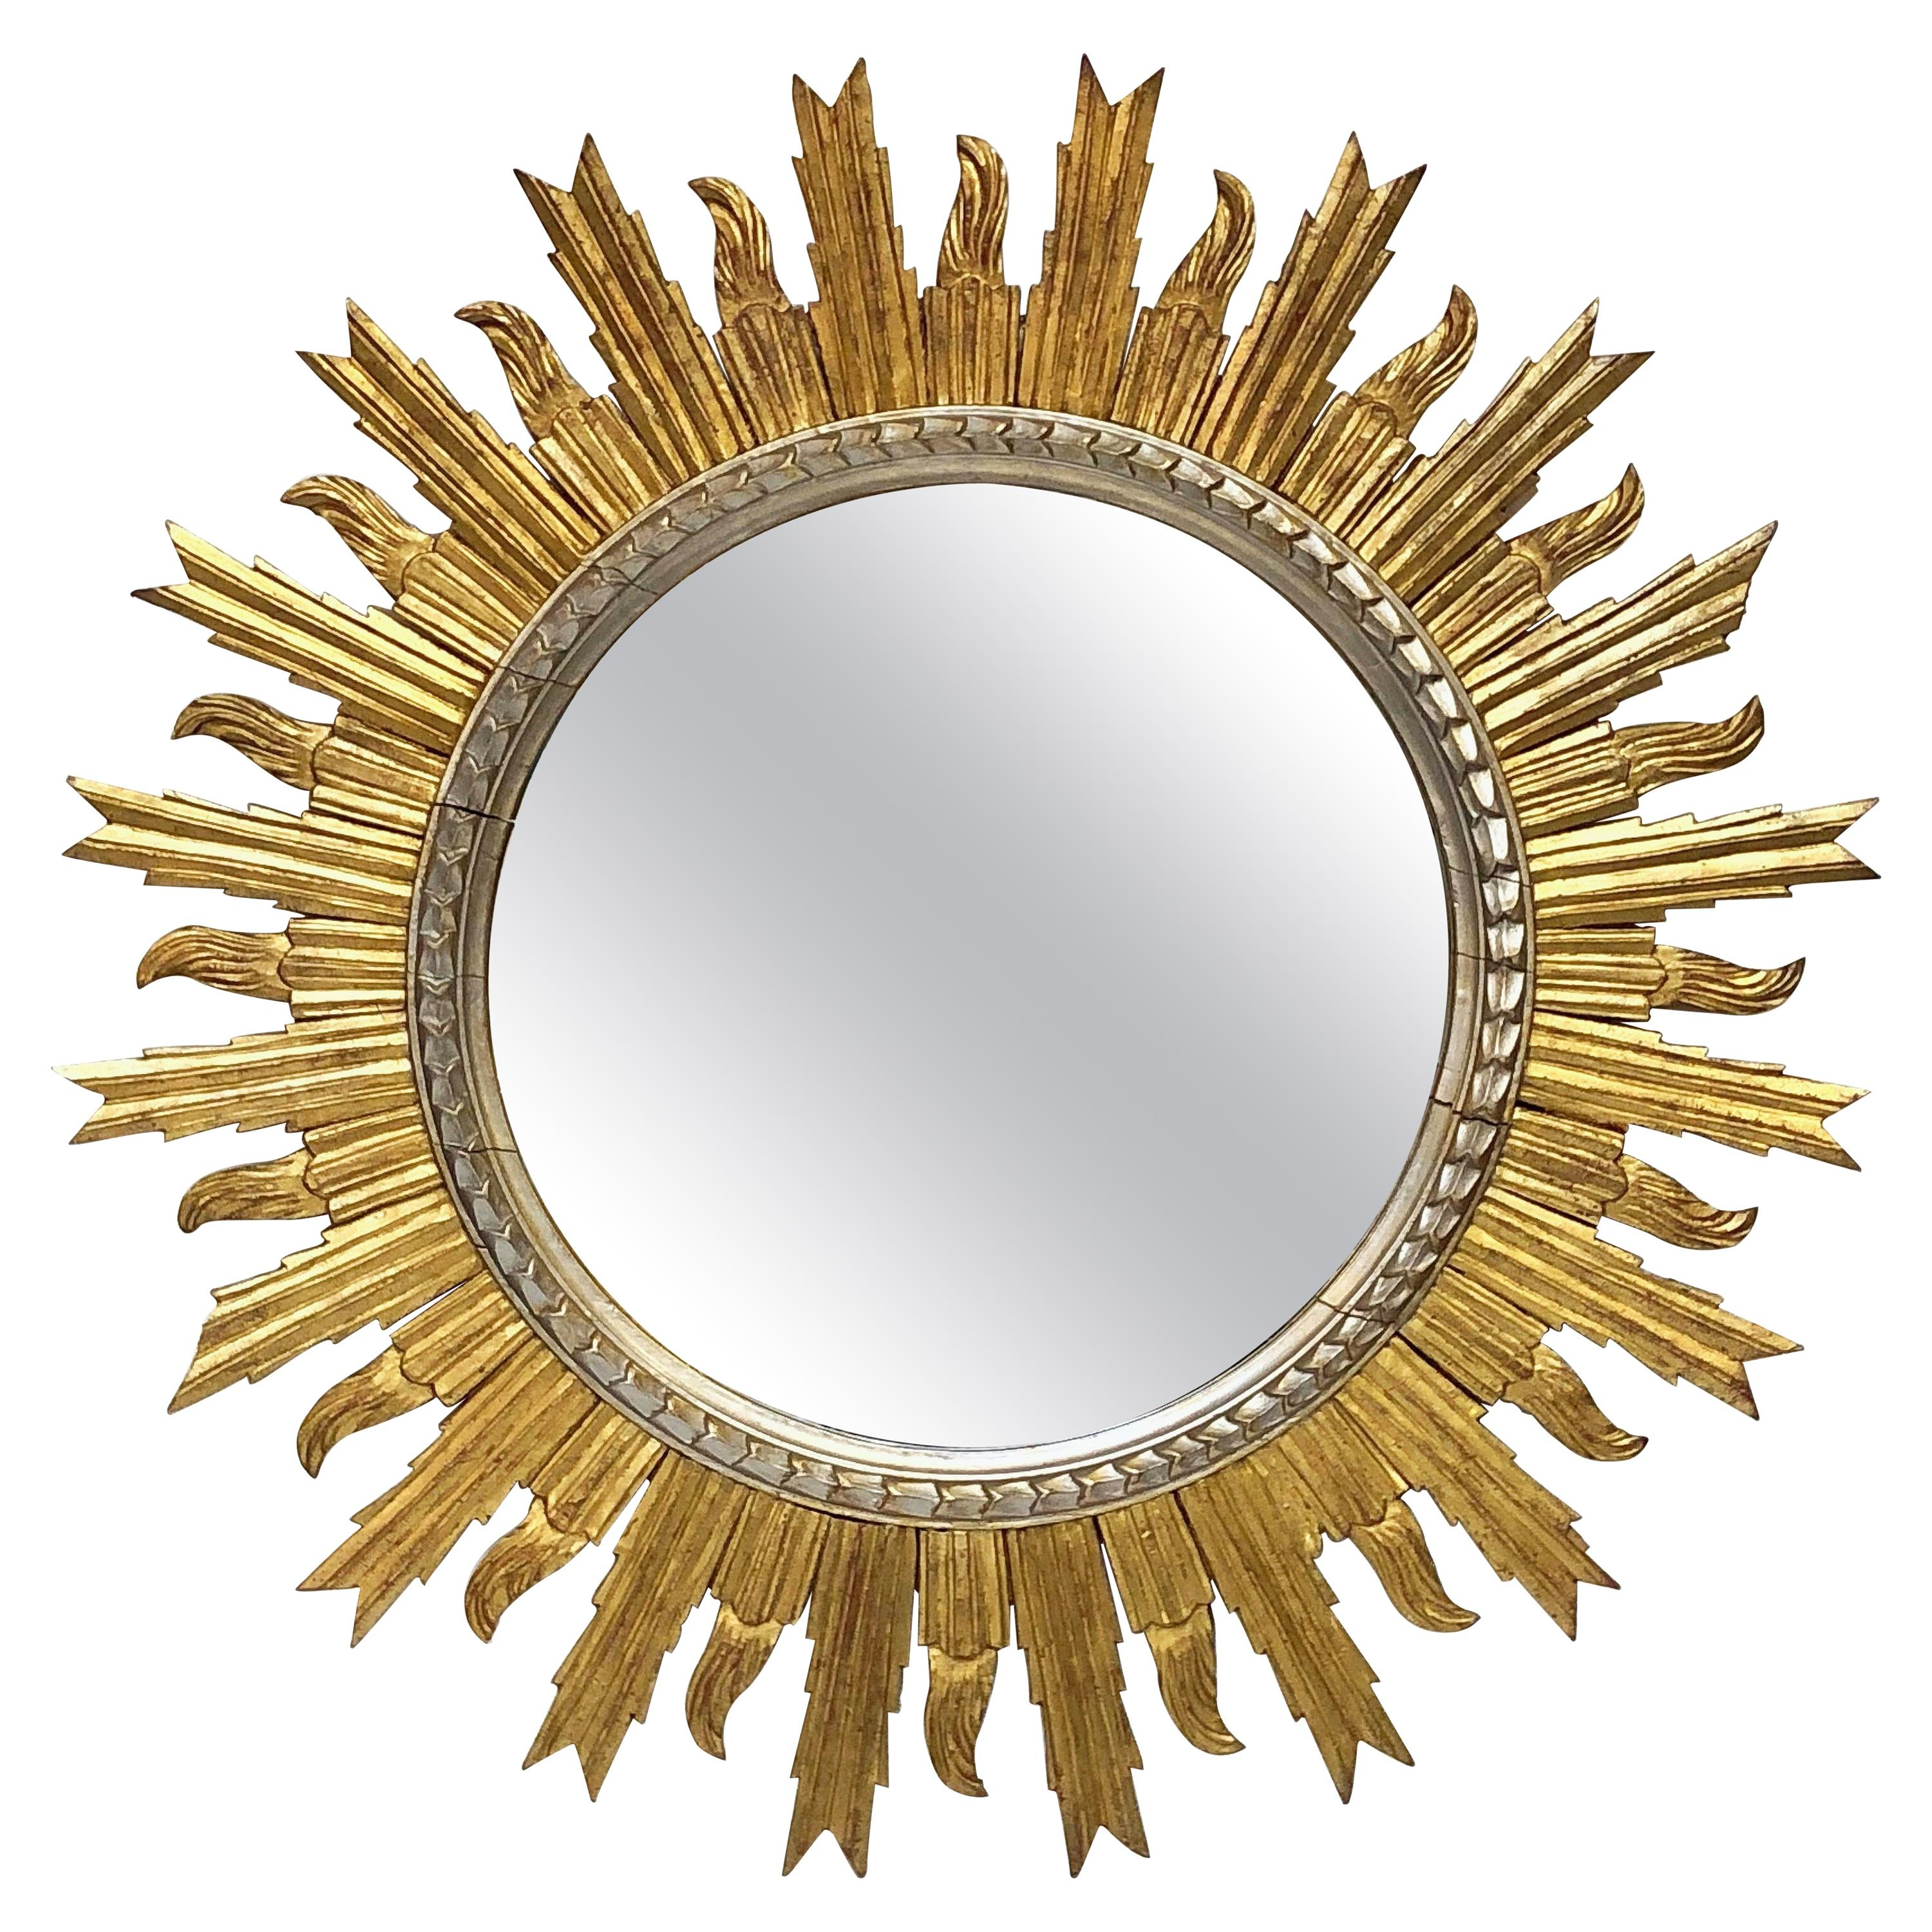 Large Sunburst Wall Mirrors Within Current Antique And Vintage Sunburst Mirrors – 629 For Sale At 1stdibs (View 20 of 20)